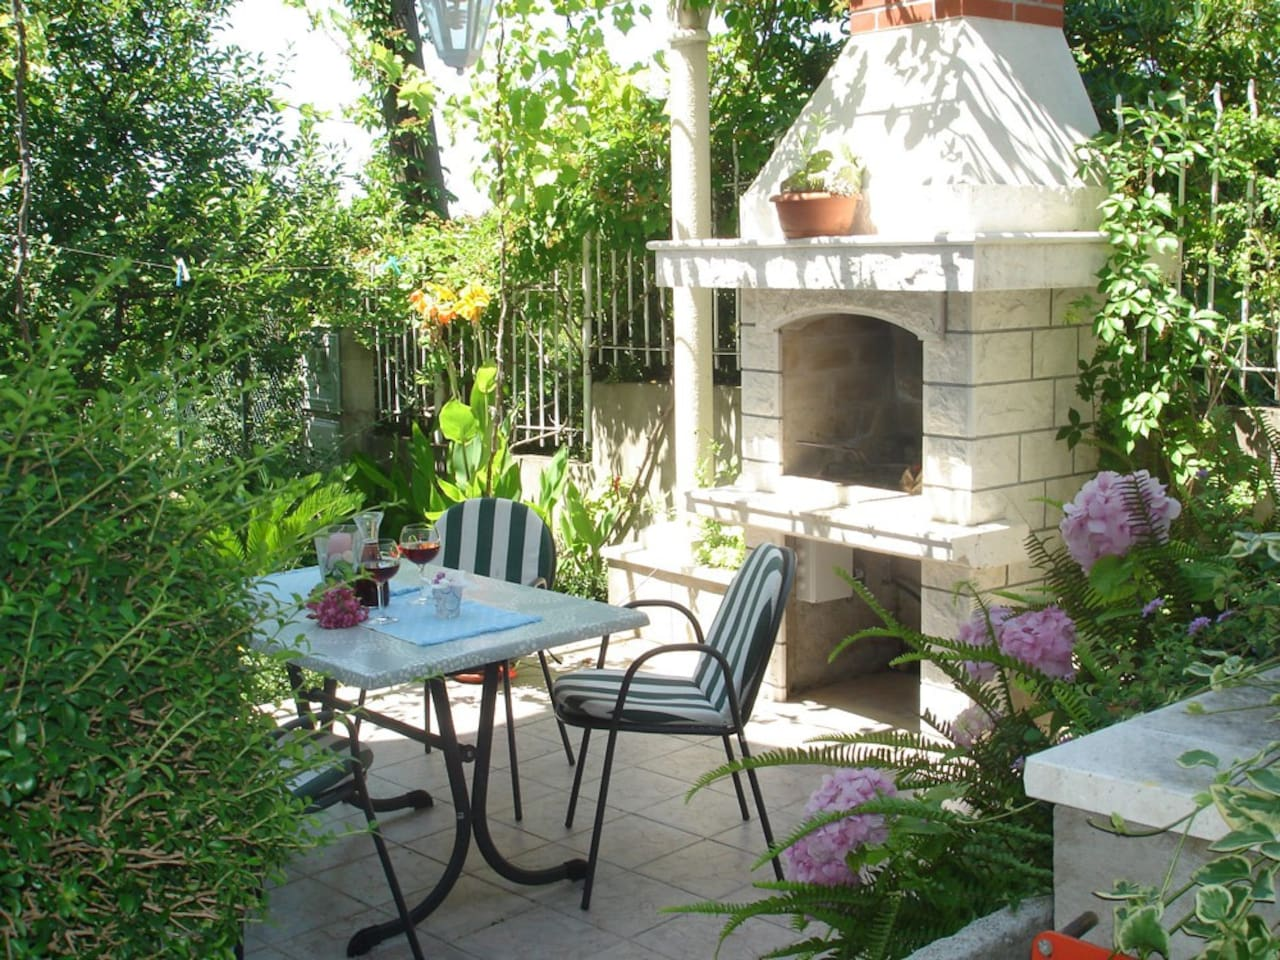 Private Garden Terrace, very secluded and quiet